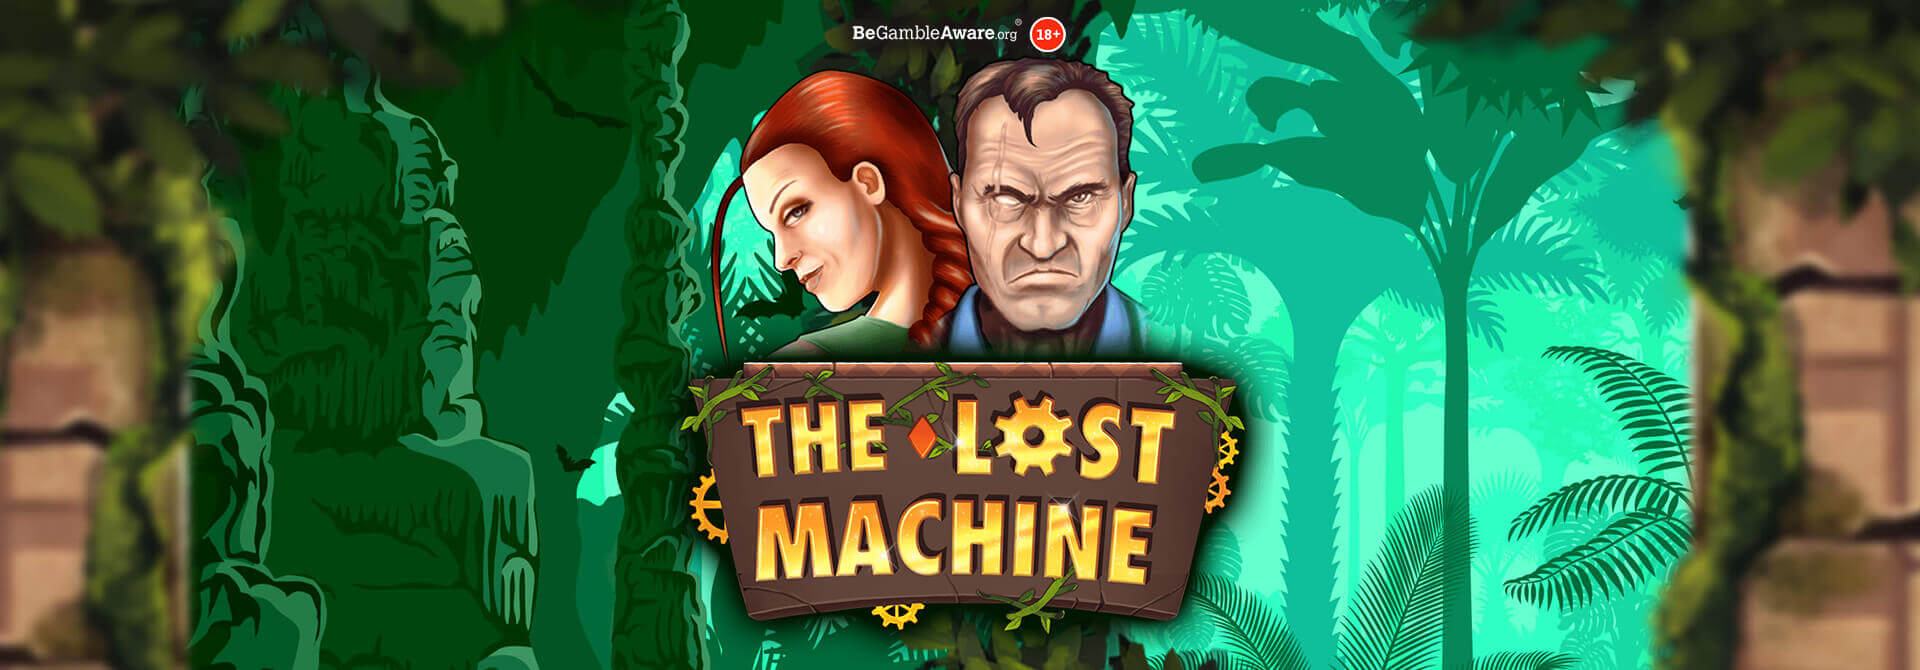 Locate the Money Machine in the latest arrival on PocketWin online slots!